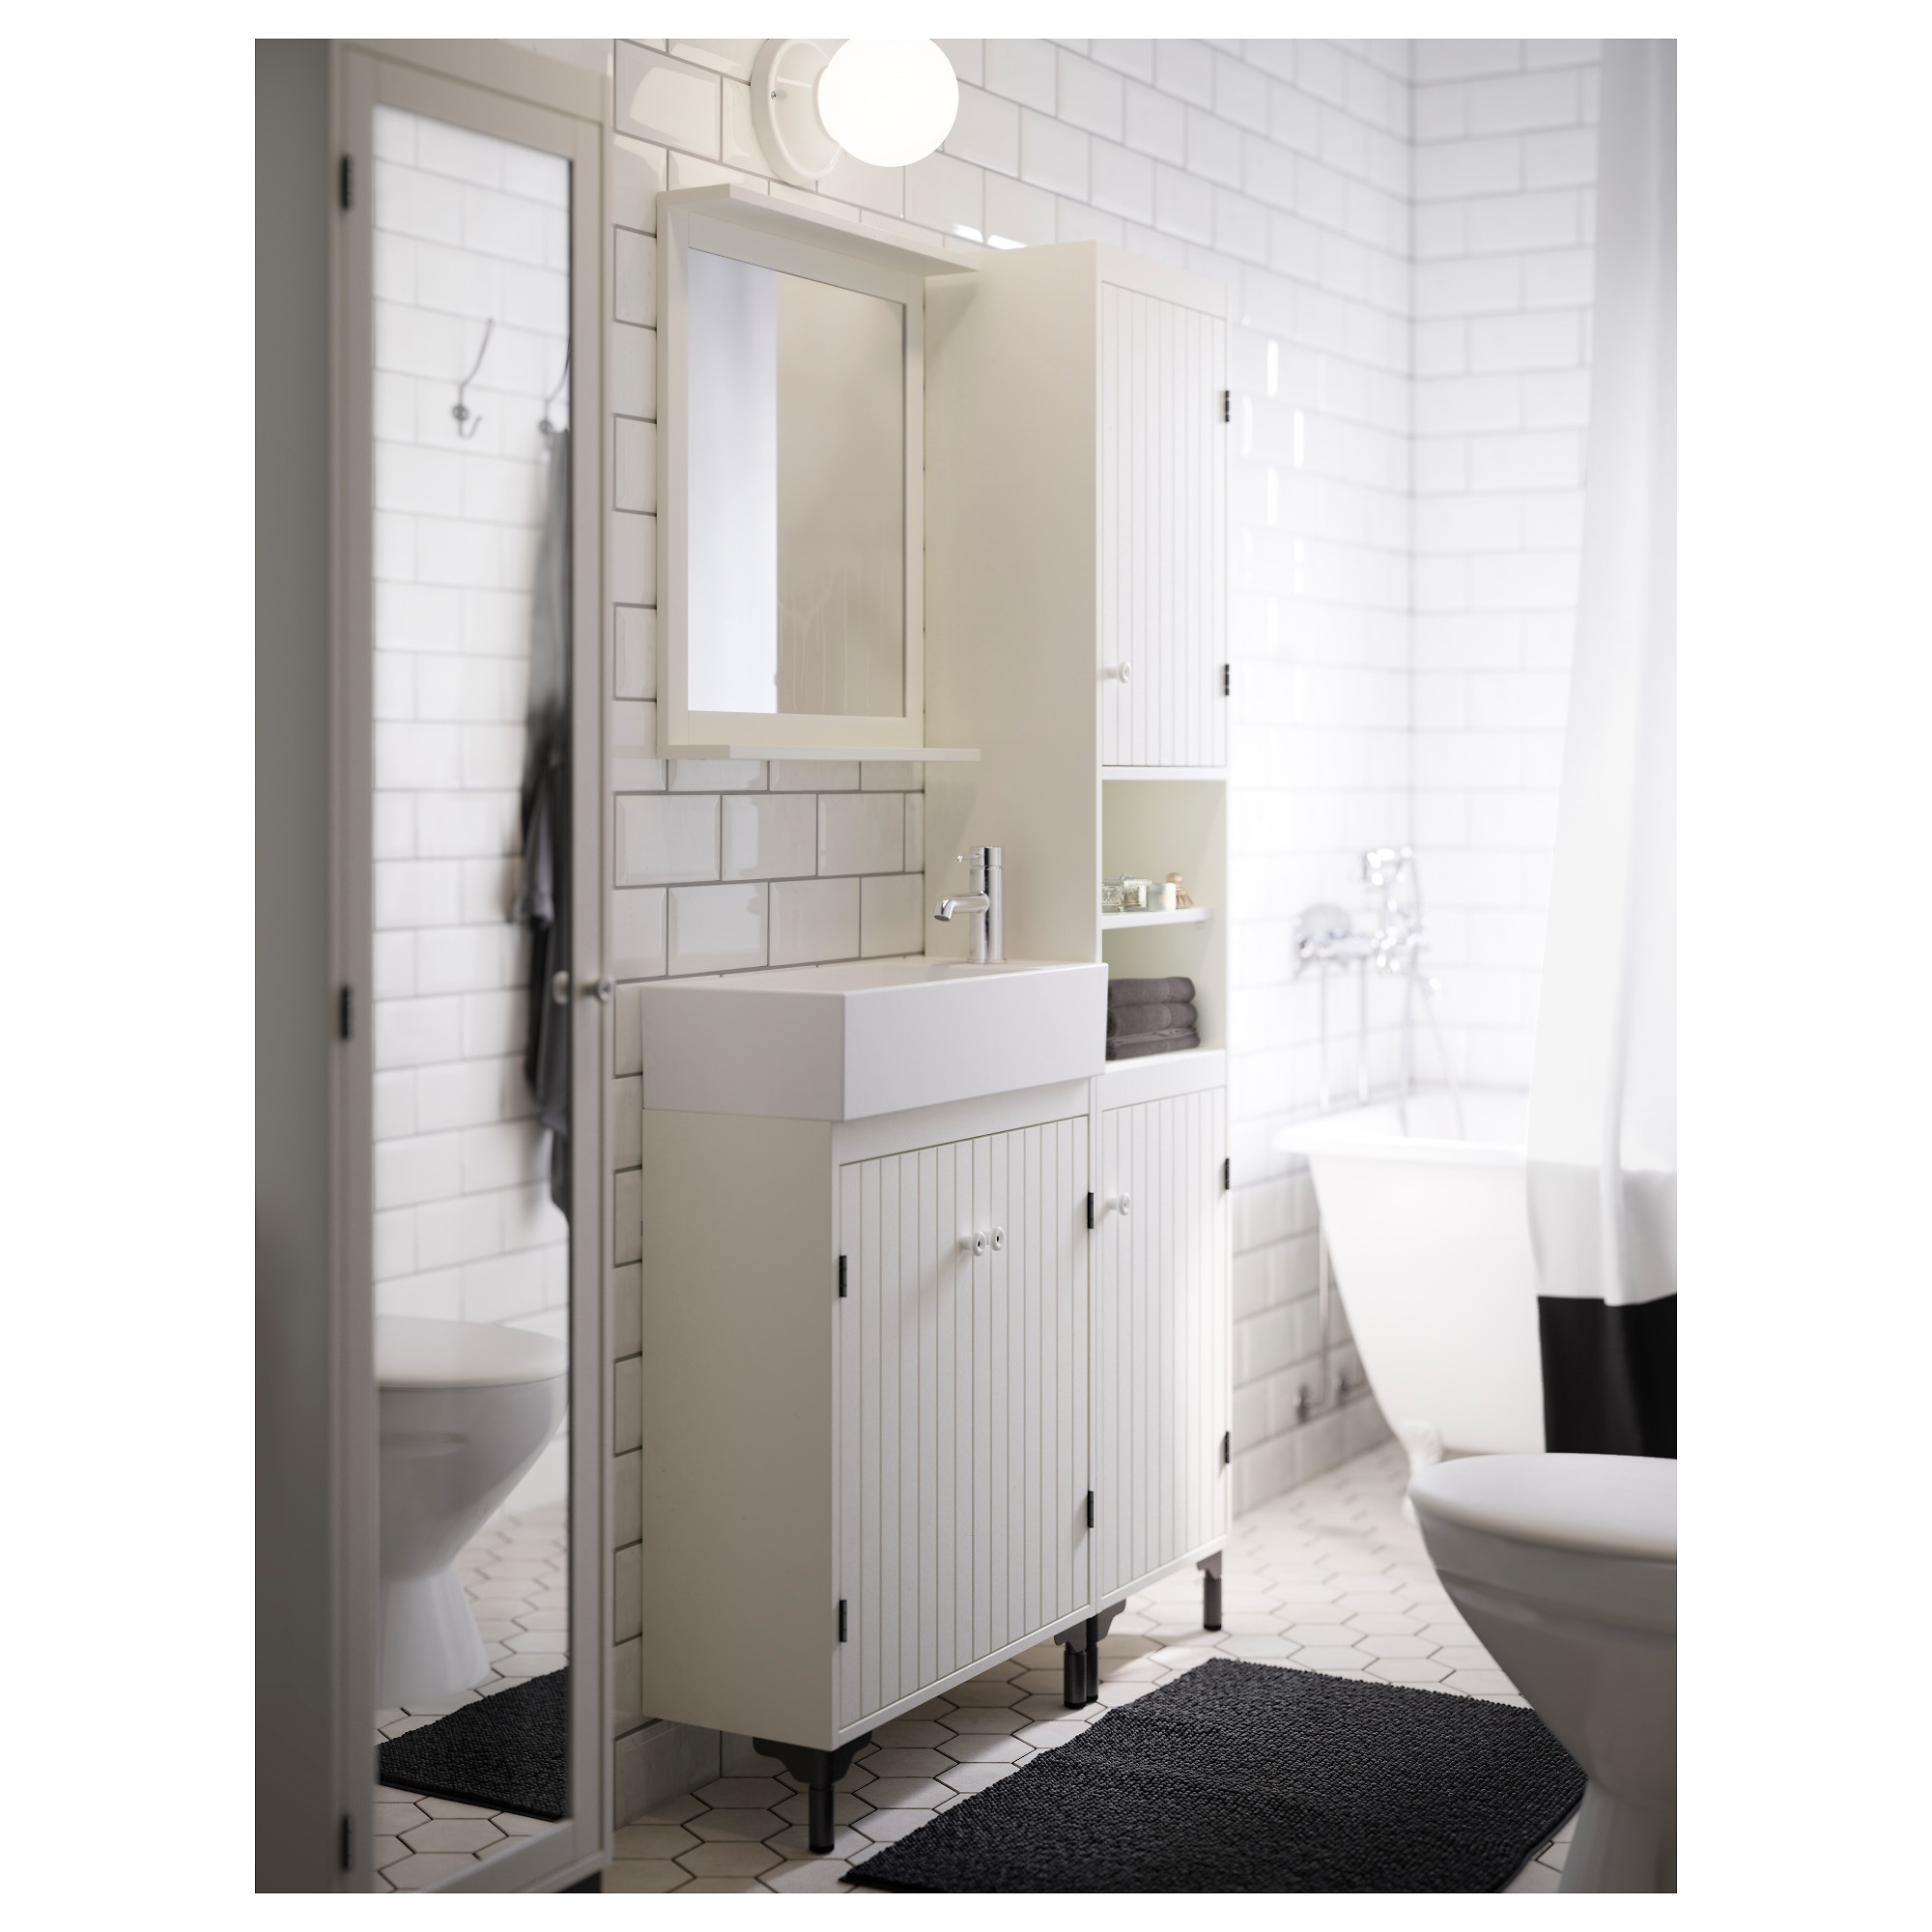 SILVERN Sink cabinet with 2 doors IKEA